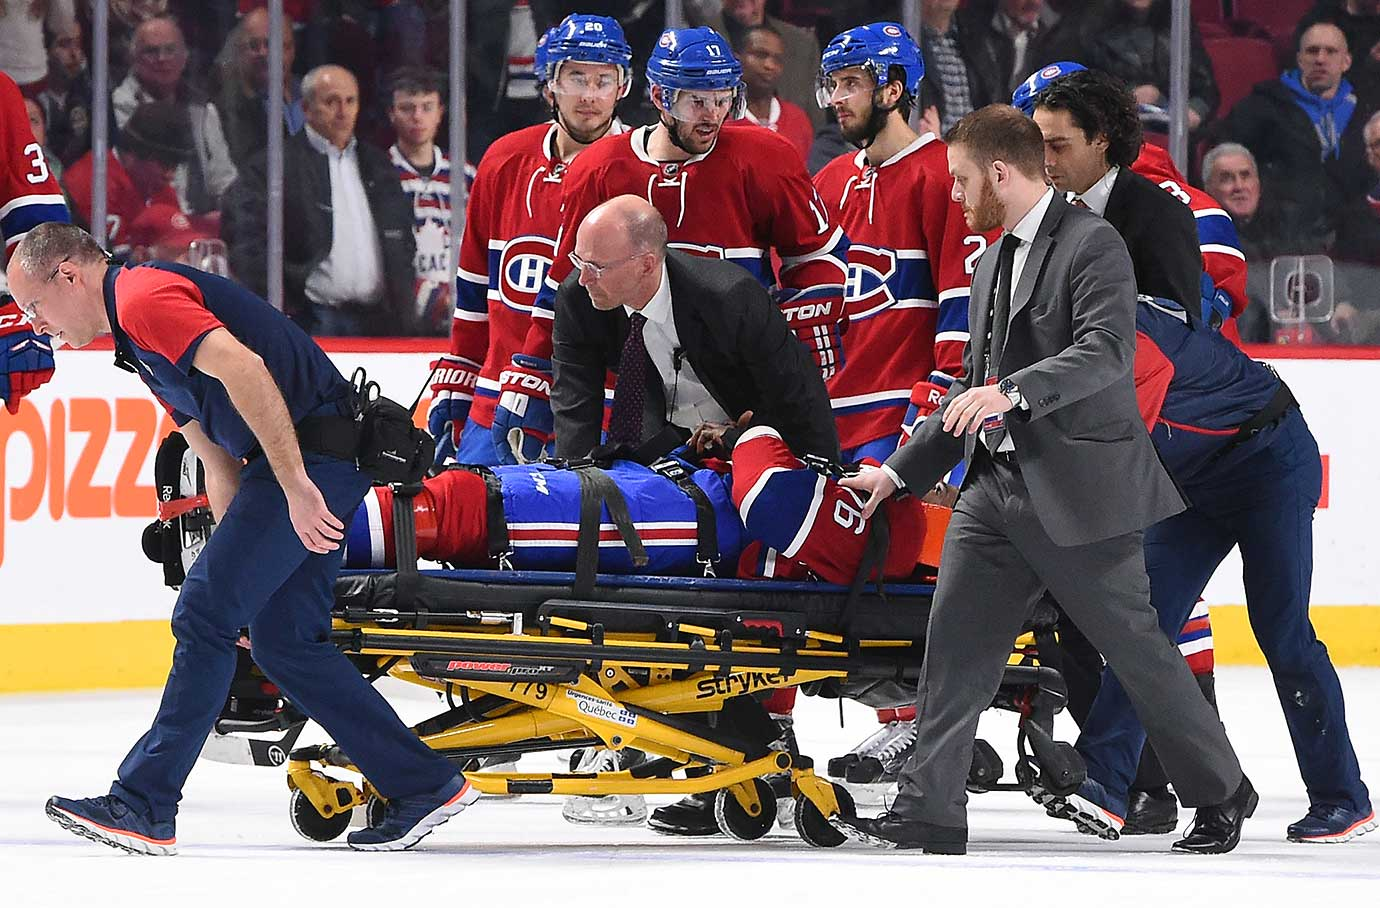 P.K. Subban of the Canadiens is taken off the ice on a gurney after a collision with teammate Alexei Emelin.